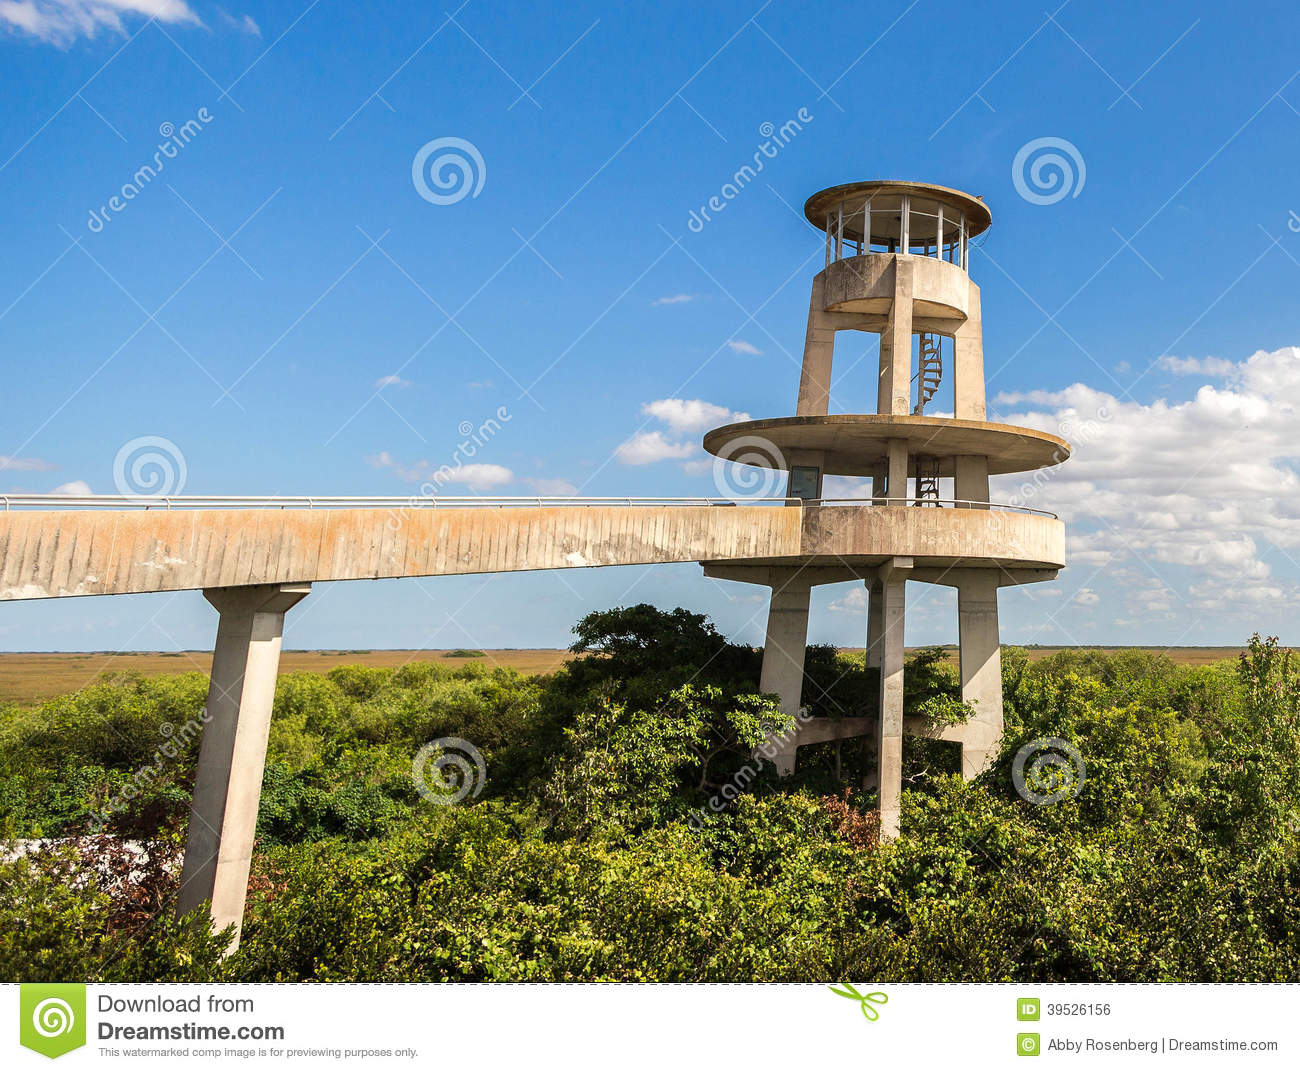 Observation Tower, Everglades National Park